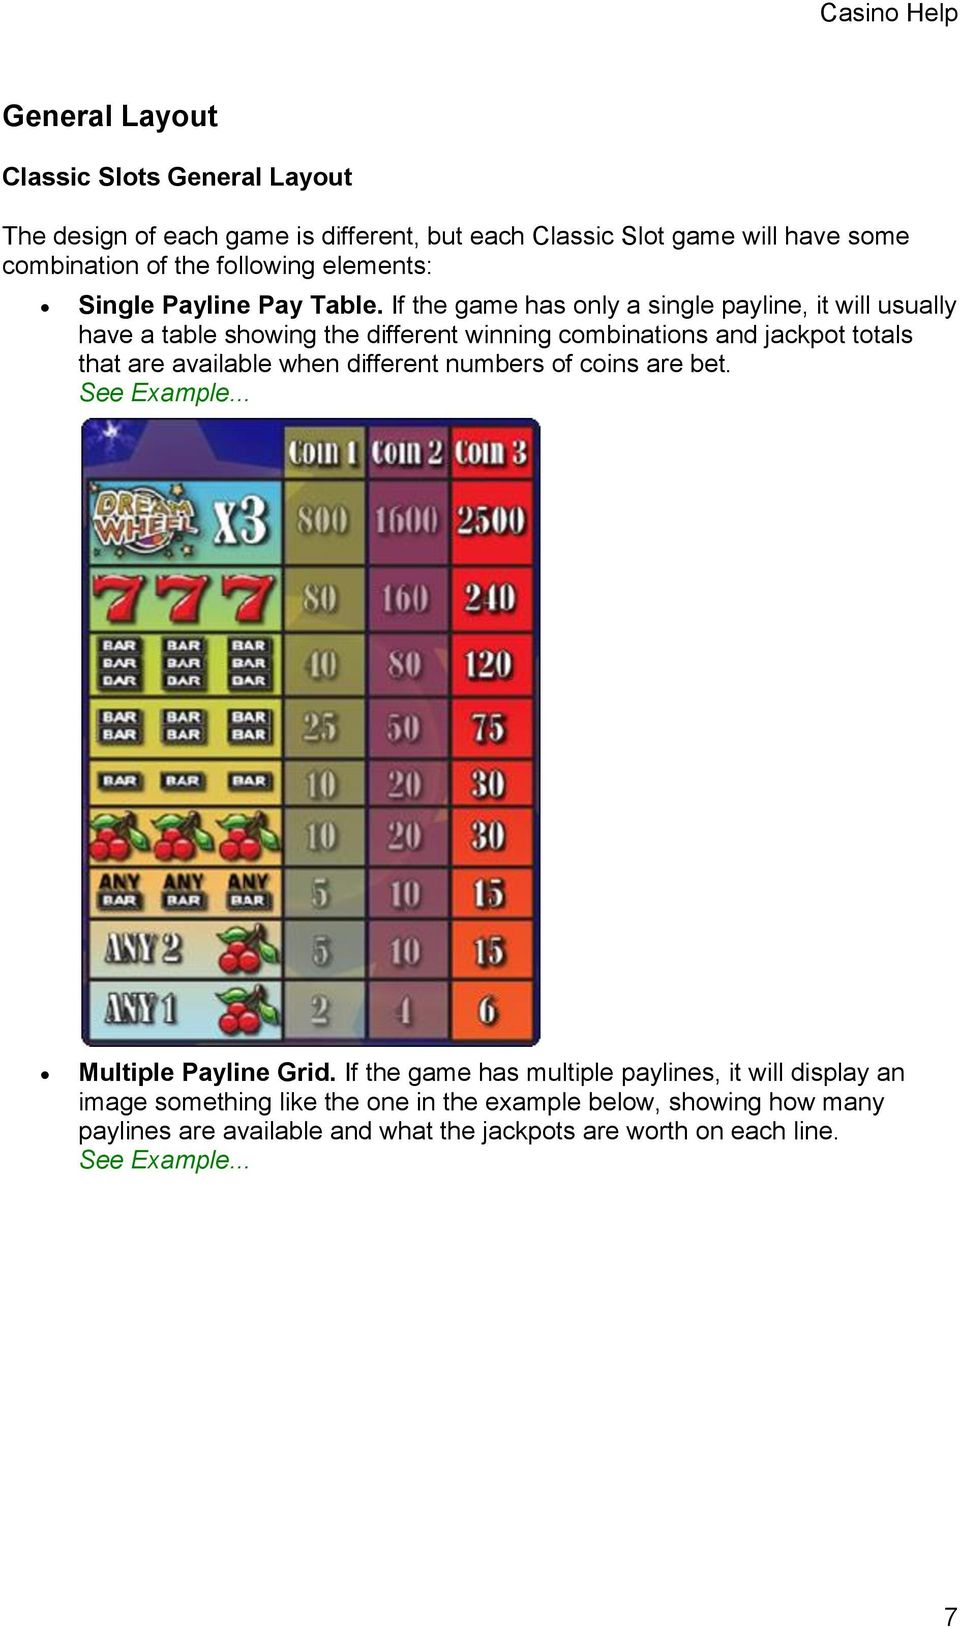 If the game has only a single payline, it will usually have a table showing the different winning combinations and jackpot totals that are available when